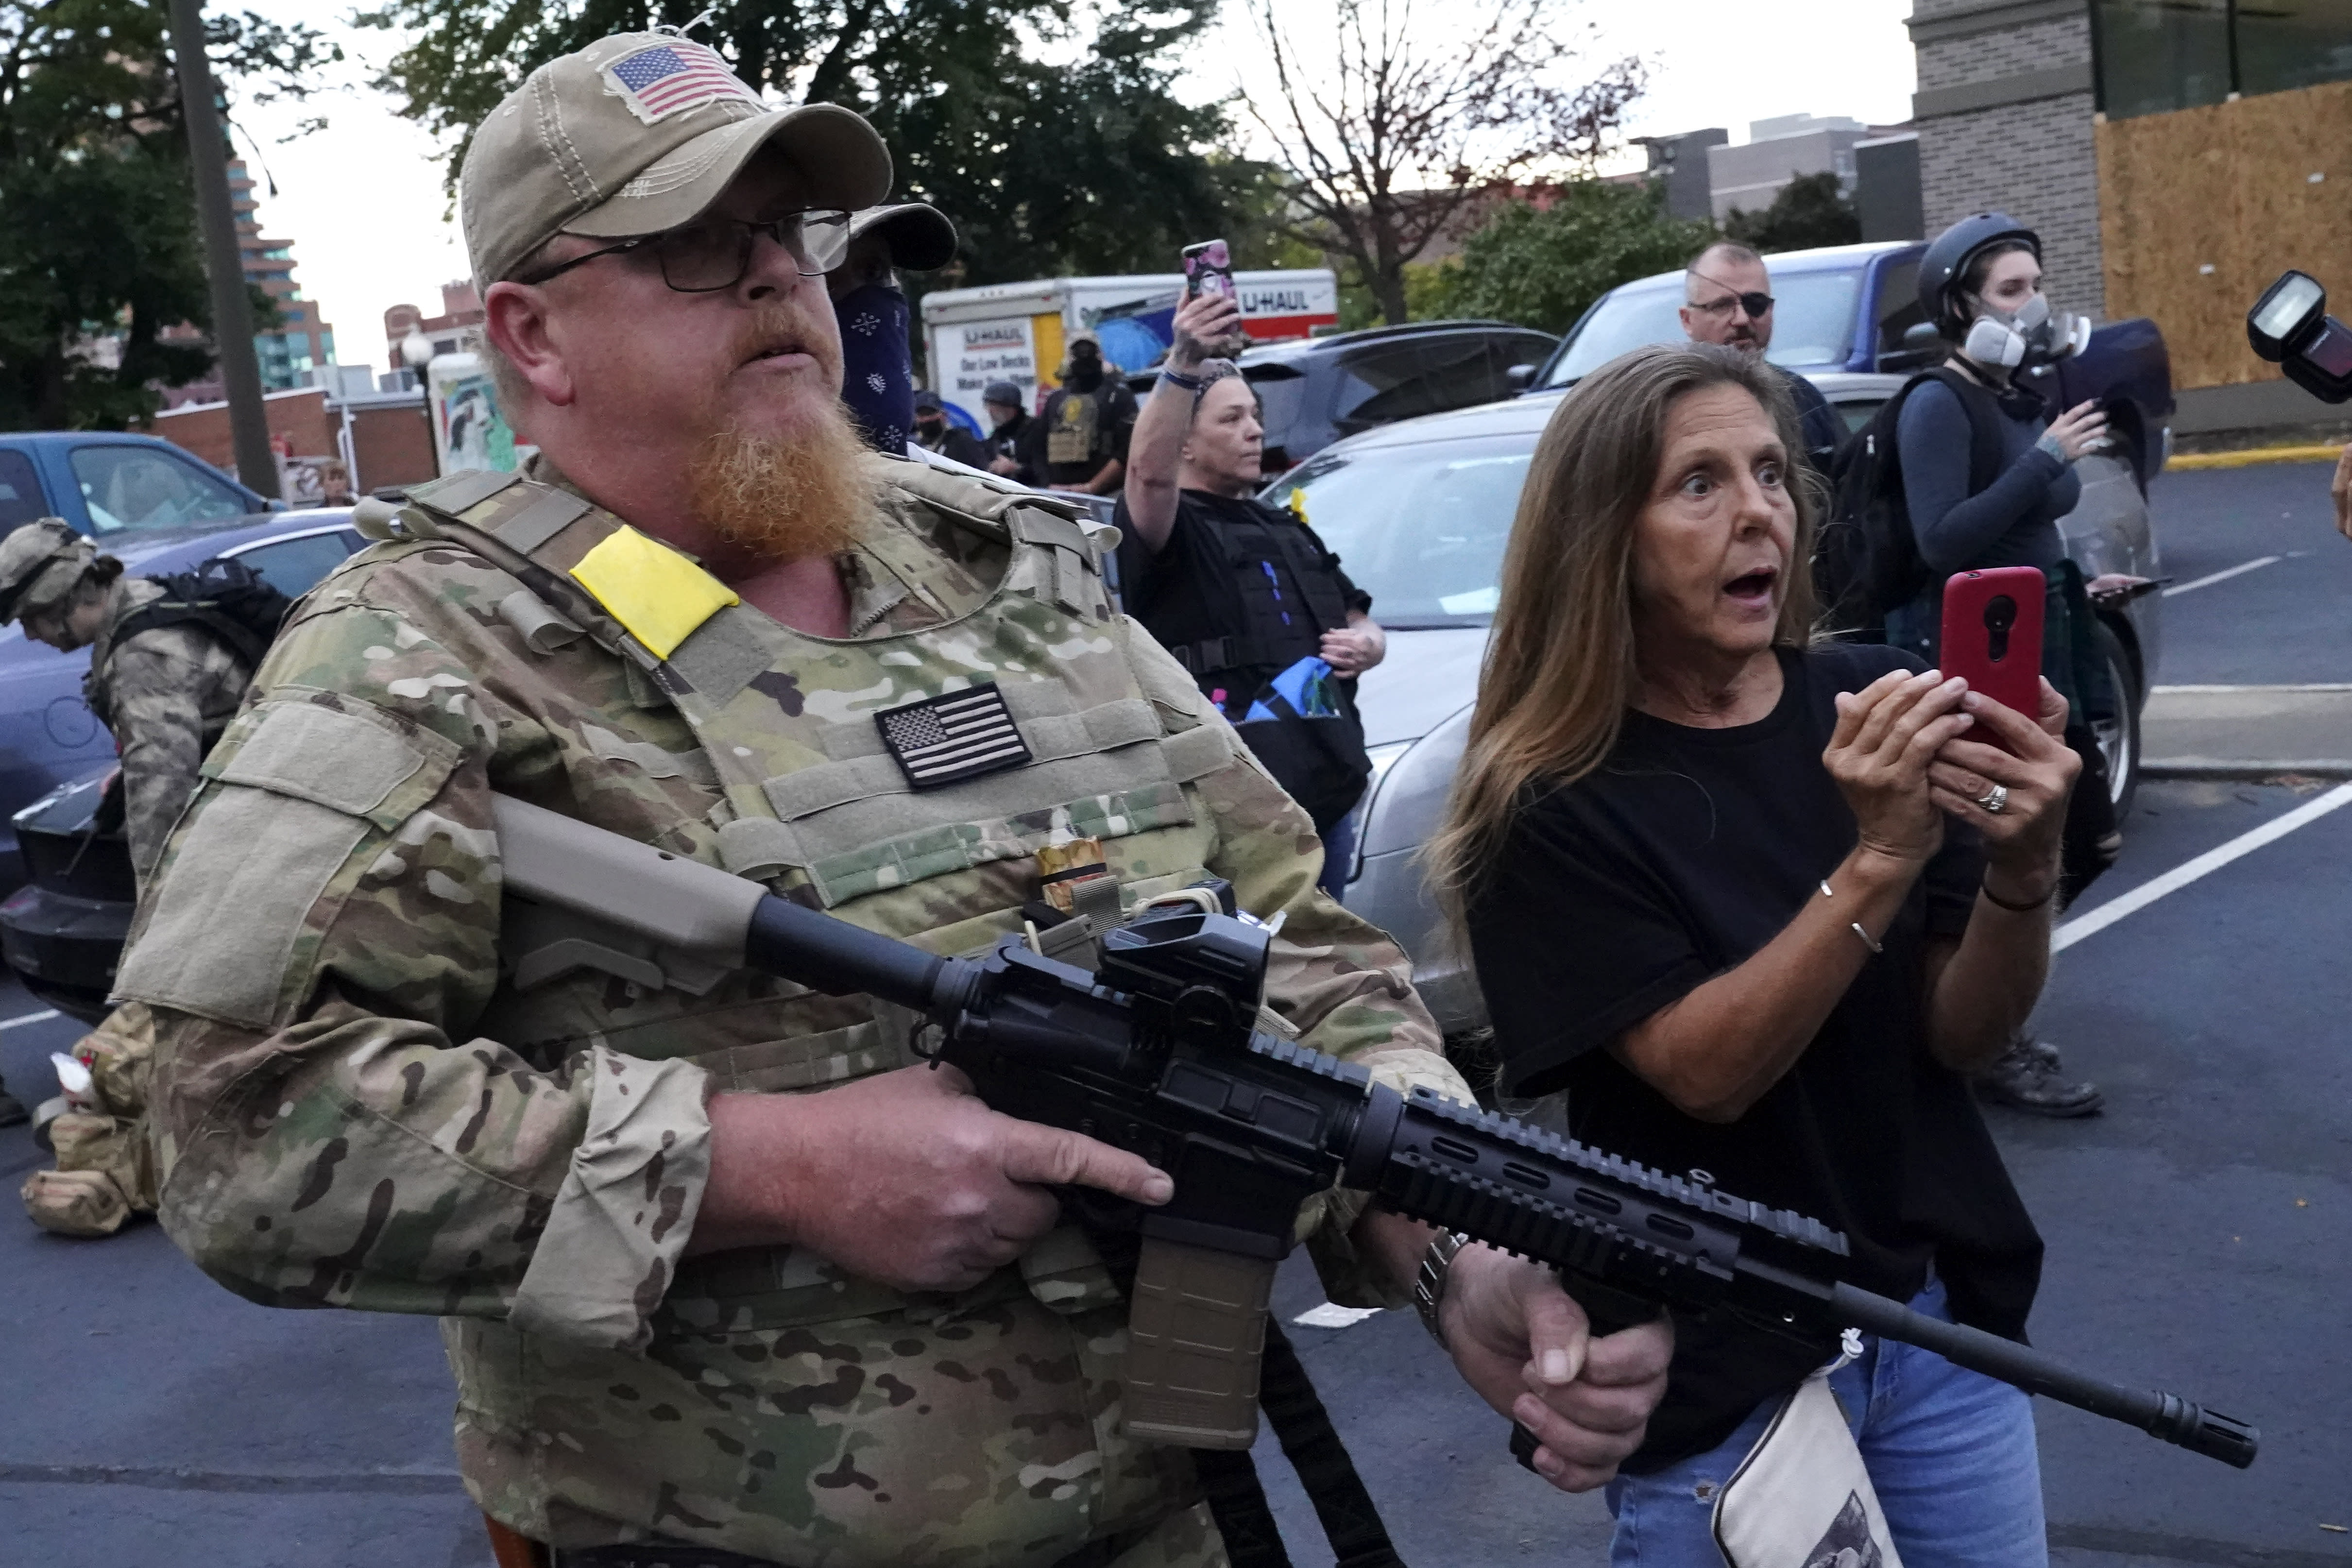 An armed counter-protester speaks with Black Lives Matter demonstrators, Thursday, Sept. 24, 2020, in Louisville, Ky. Authorities pleaded for calm while activists vowed to fight on Thursday in Kentucky's largest city, where a gunman wounded two police officers during anguished protests following the decision not to charge officers for killing Breonna Taylor. (AP Photo/John Minchillo)